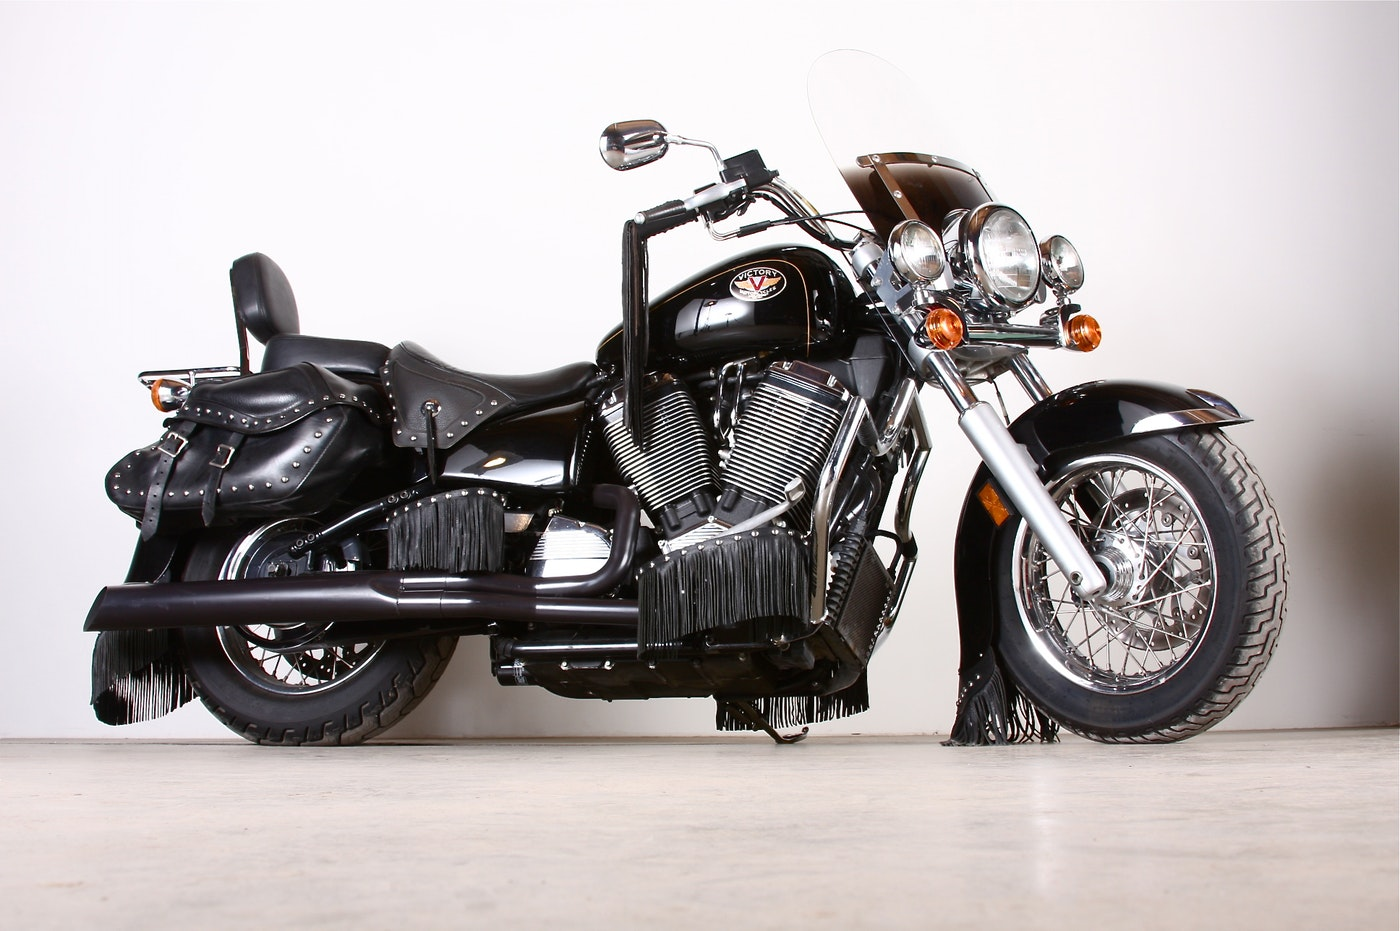 2001 Victory V92c Deluxe Motorcyle Ebth